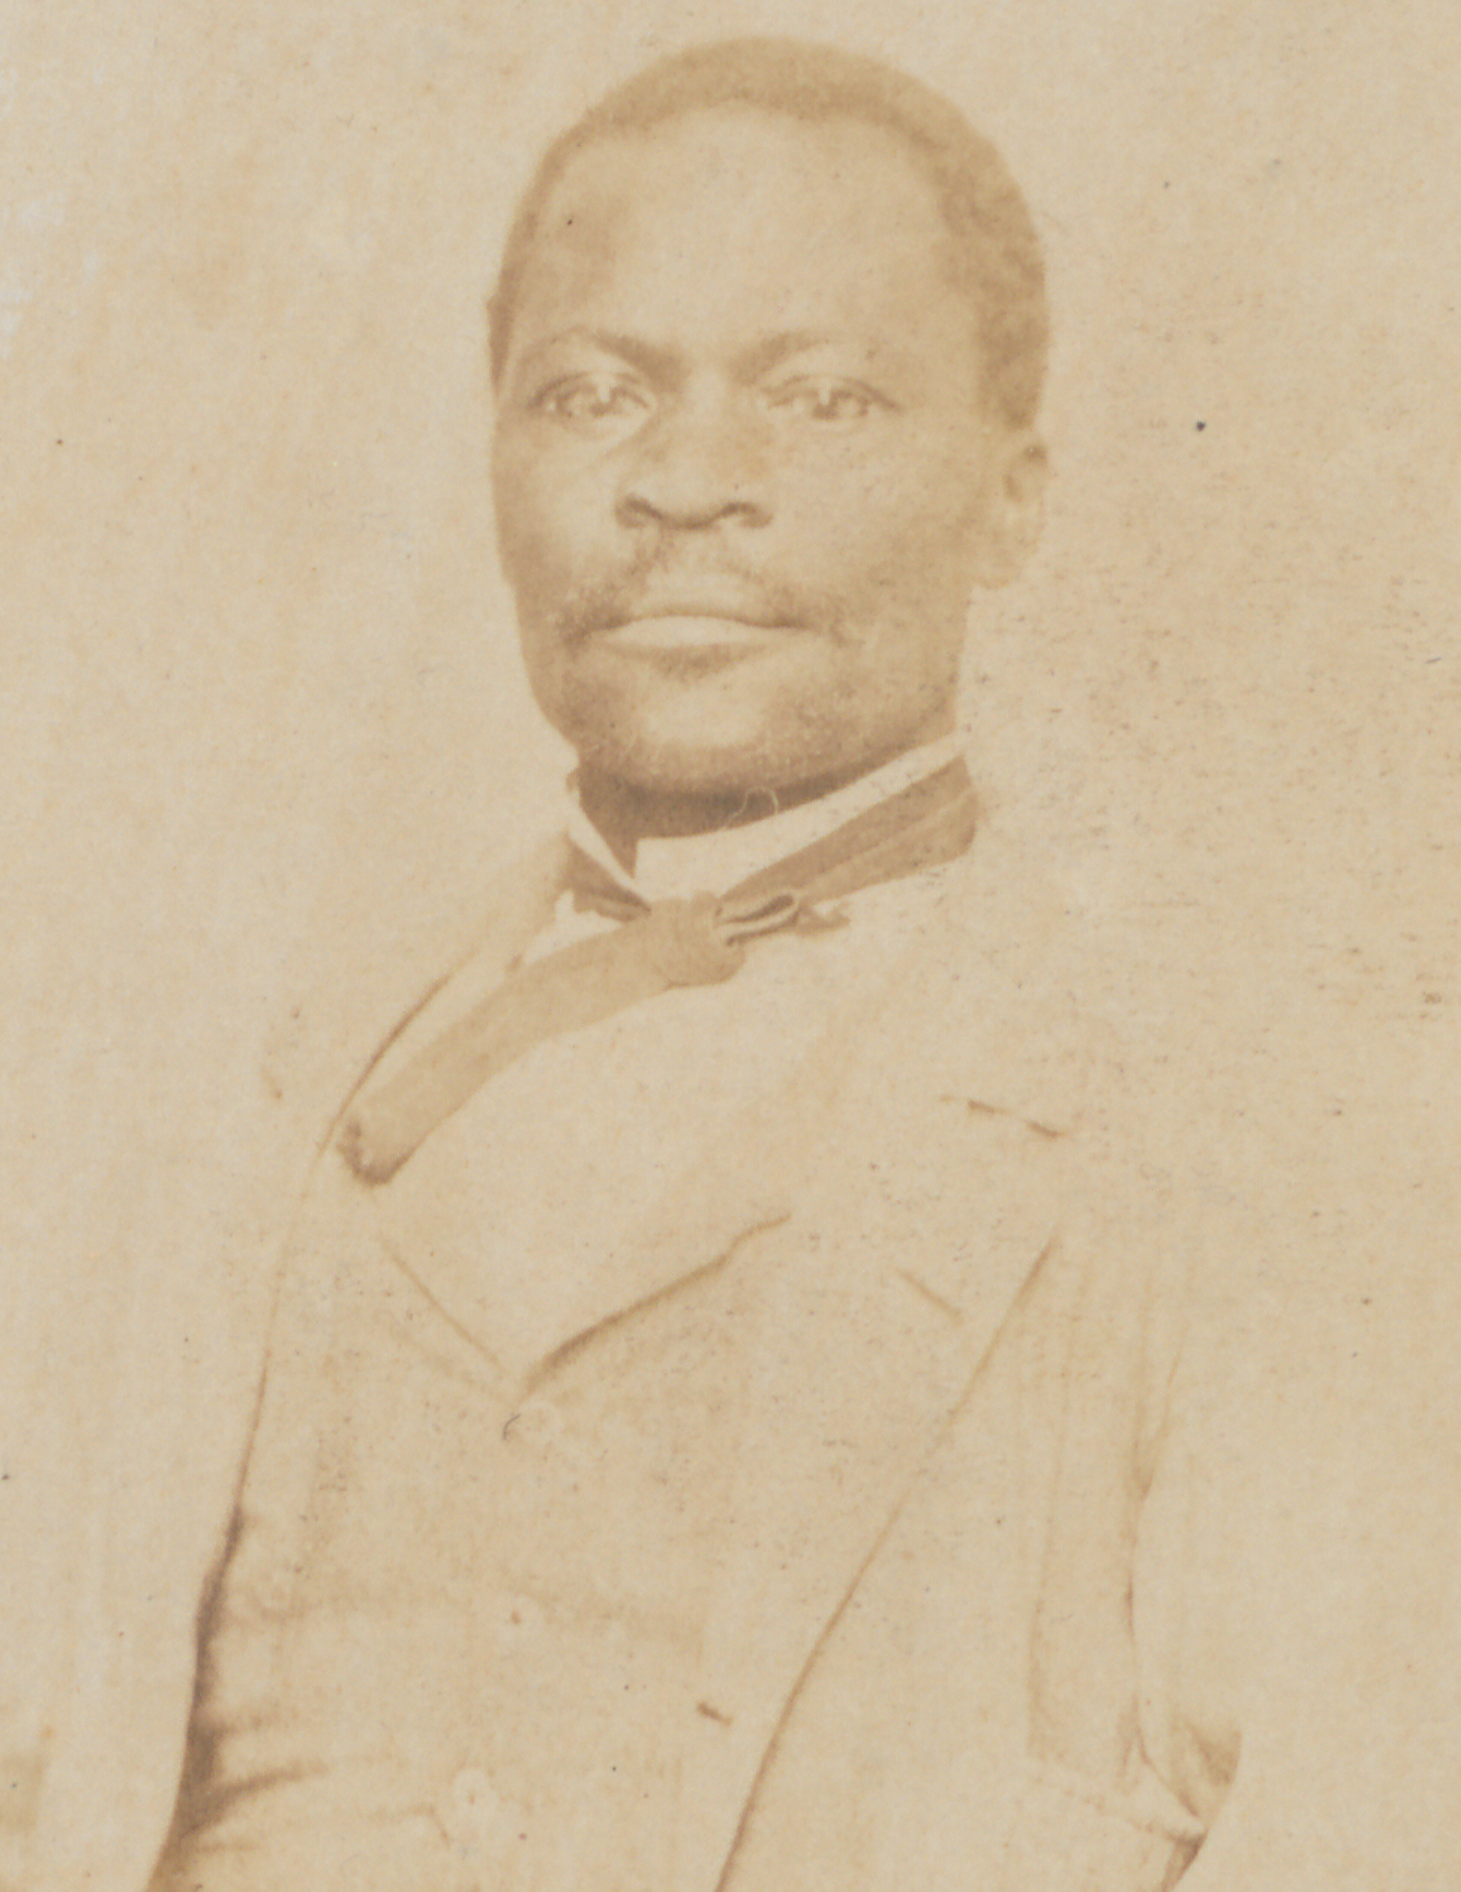 James C. Johnson circa 1860